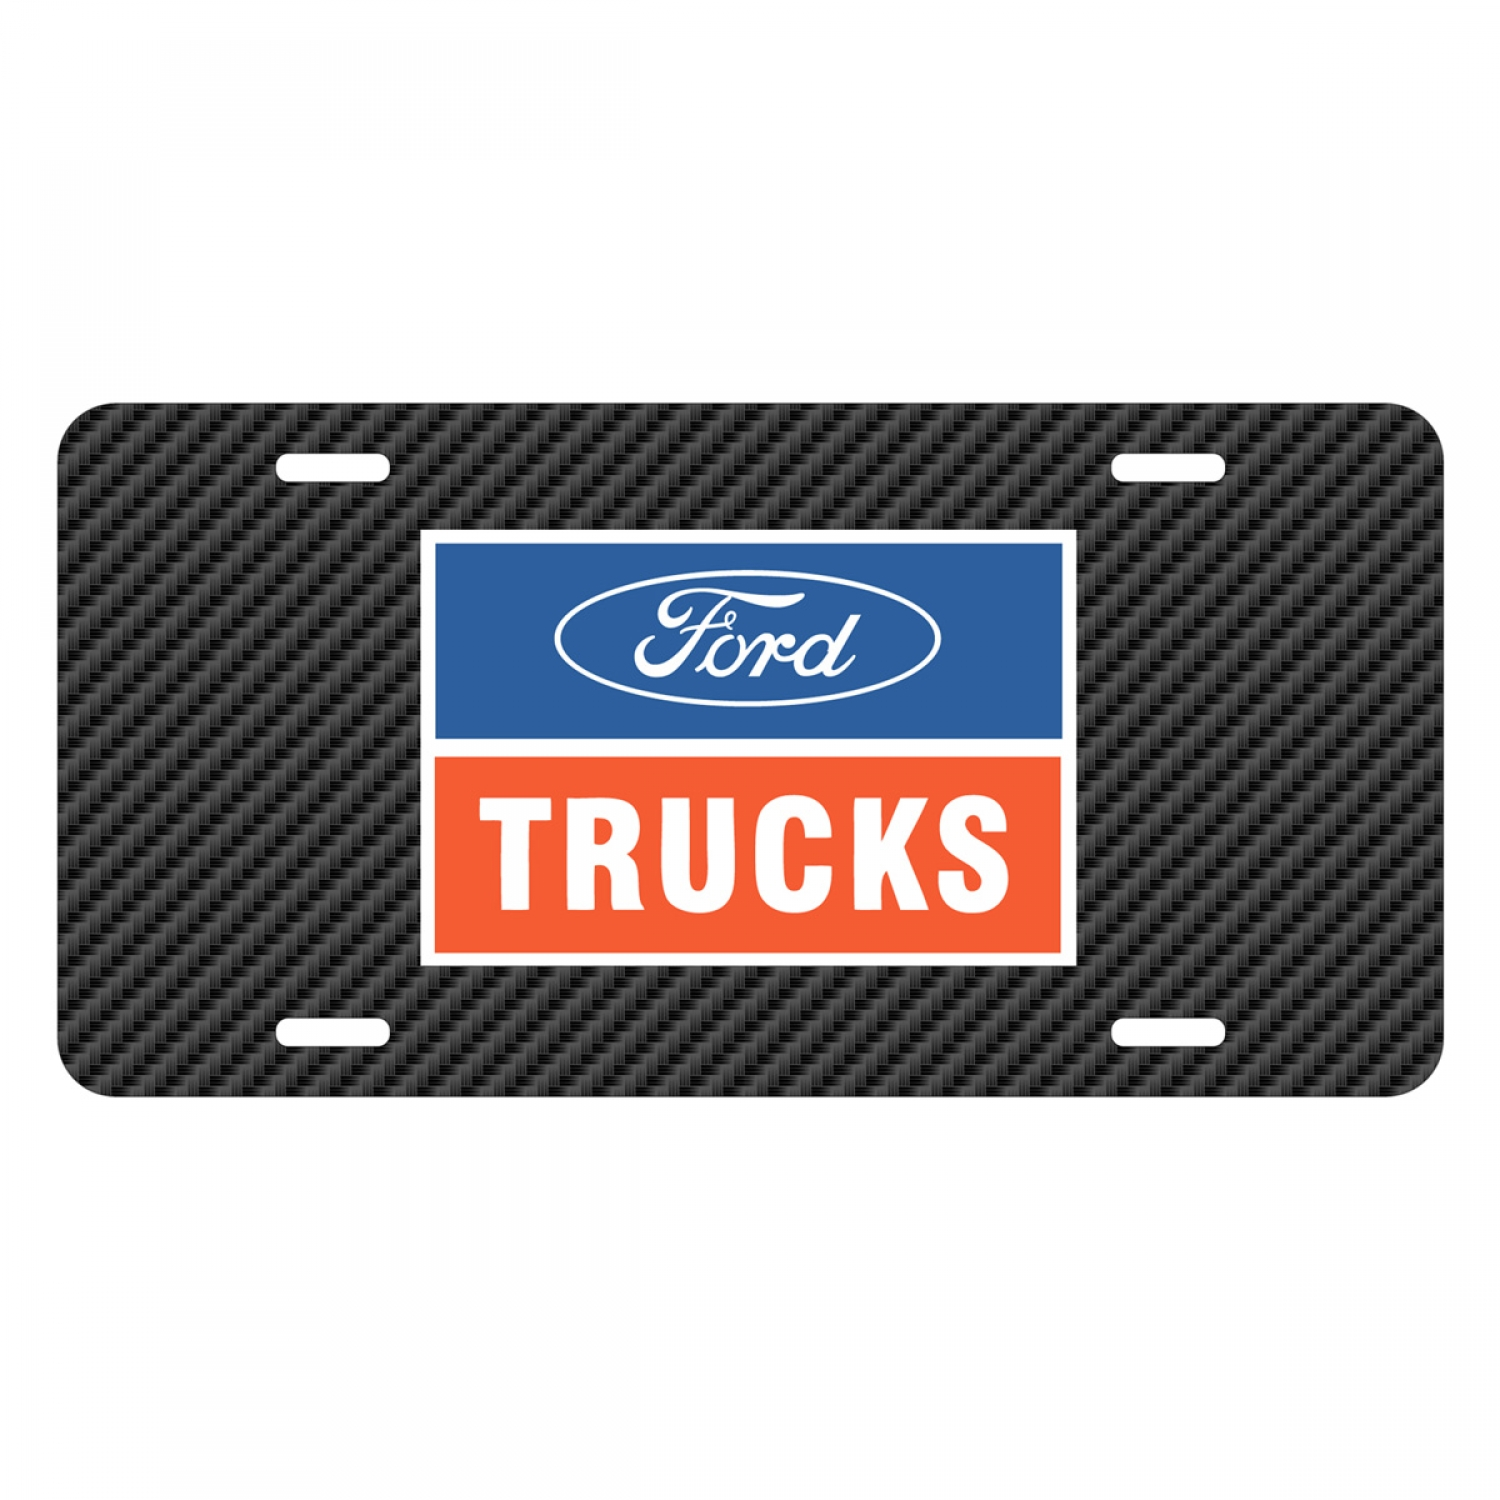 Ford Trucks Black Carbon Fiber Texture Graphic UV Metal License Plate